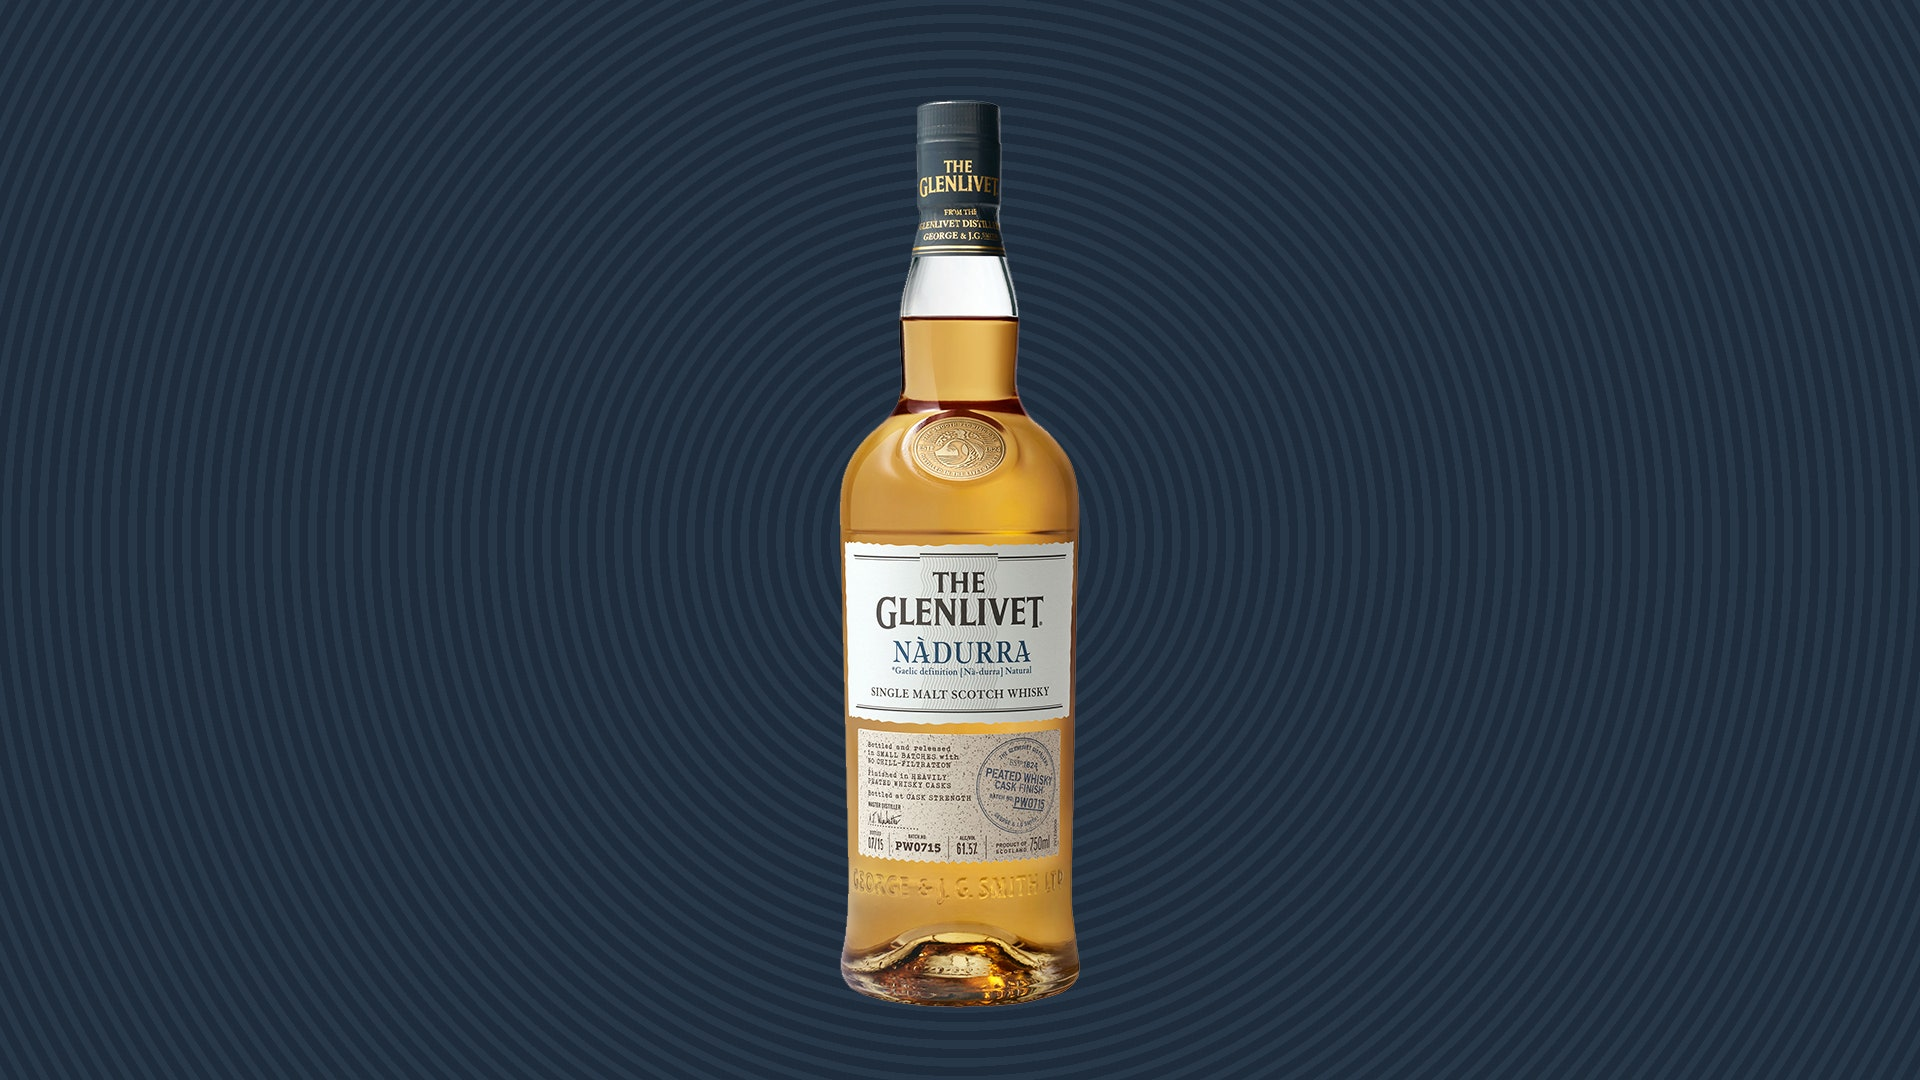 The One Whisky To Try This Weekend: The Glenlivet Nàdurra Pwc photo